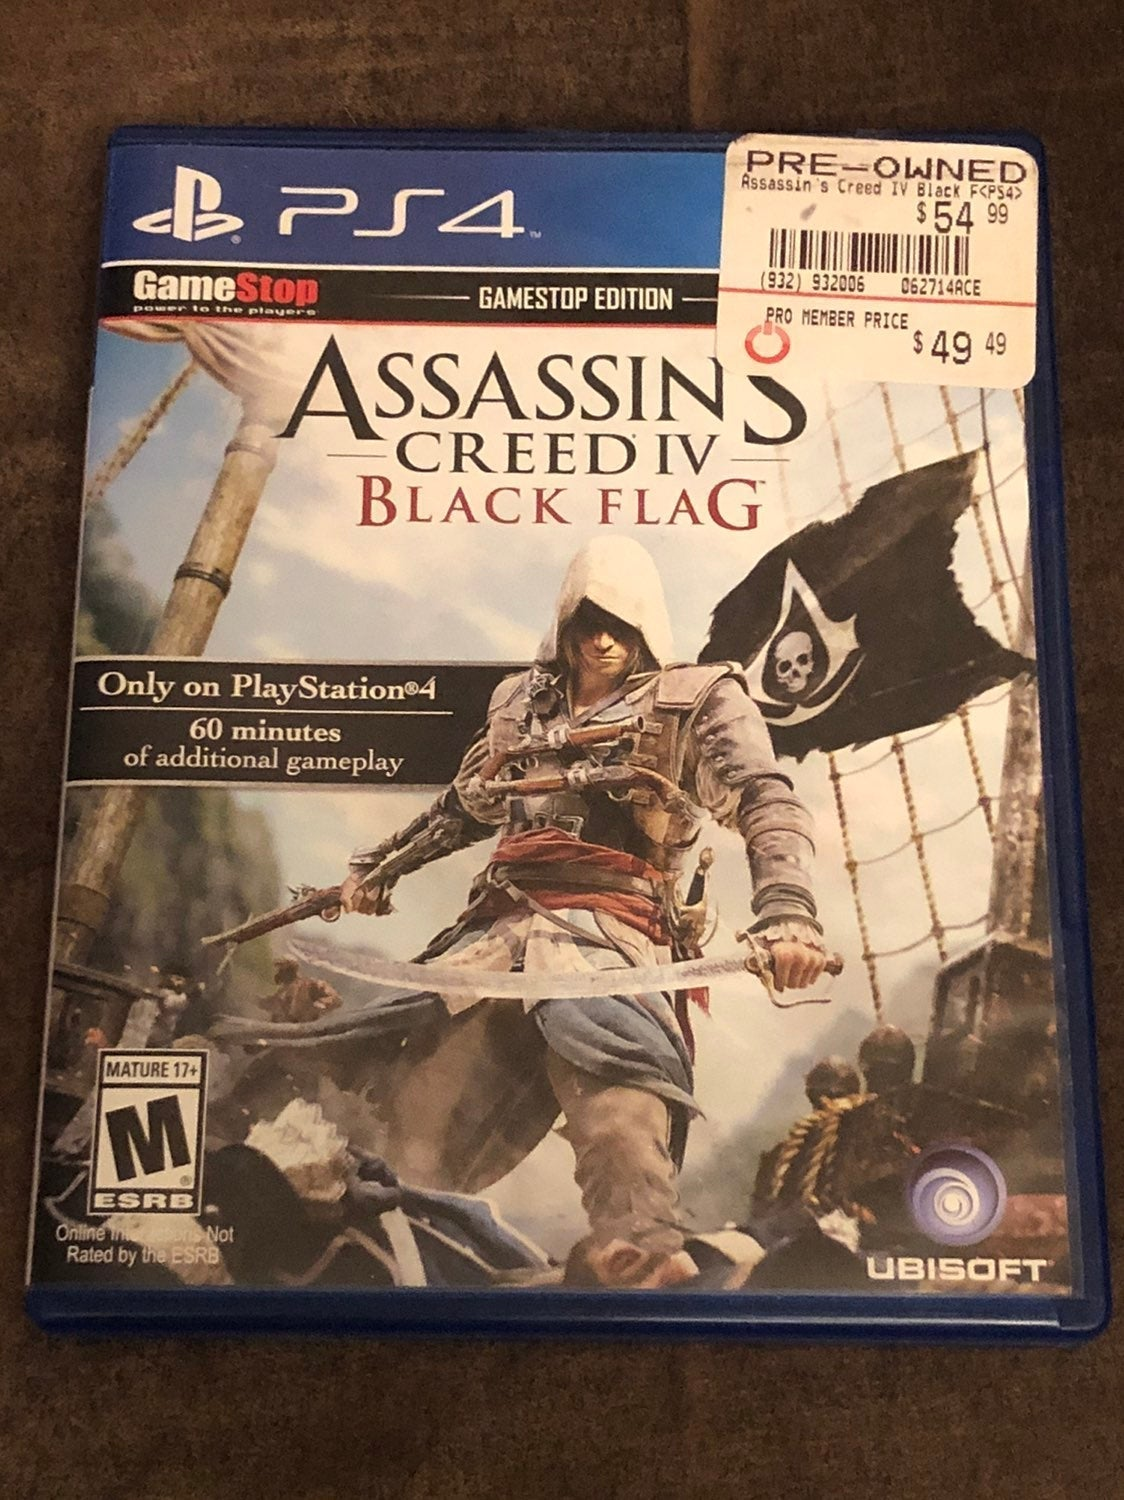 Assassin's Creed IV: Black Flag on PS4